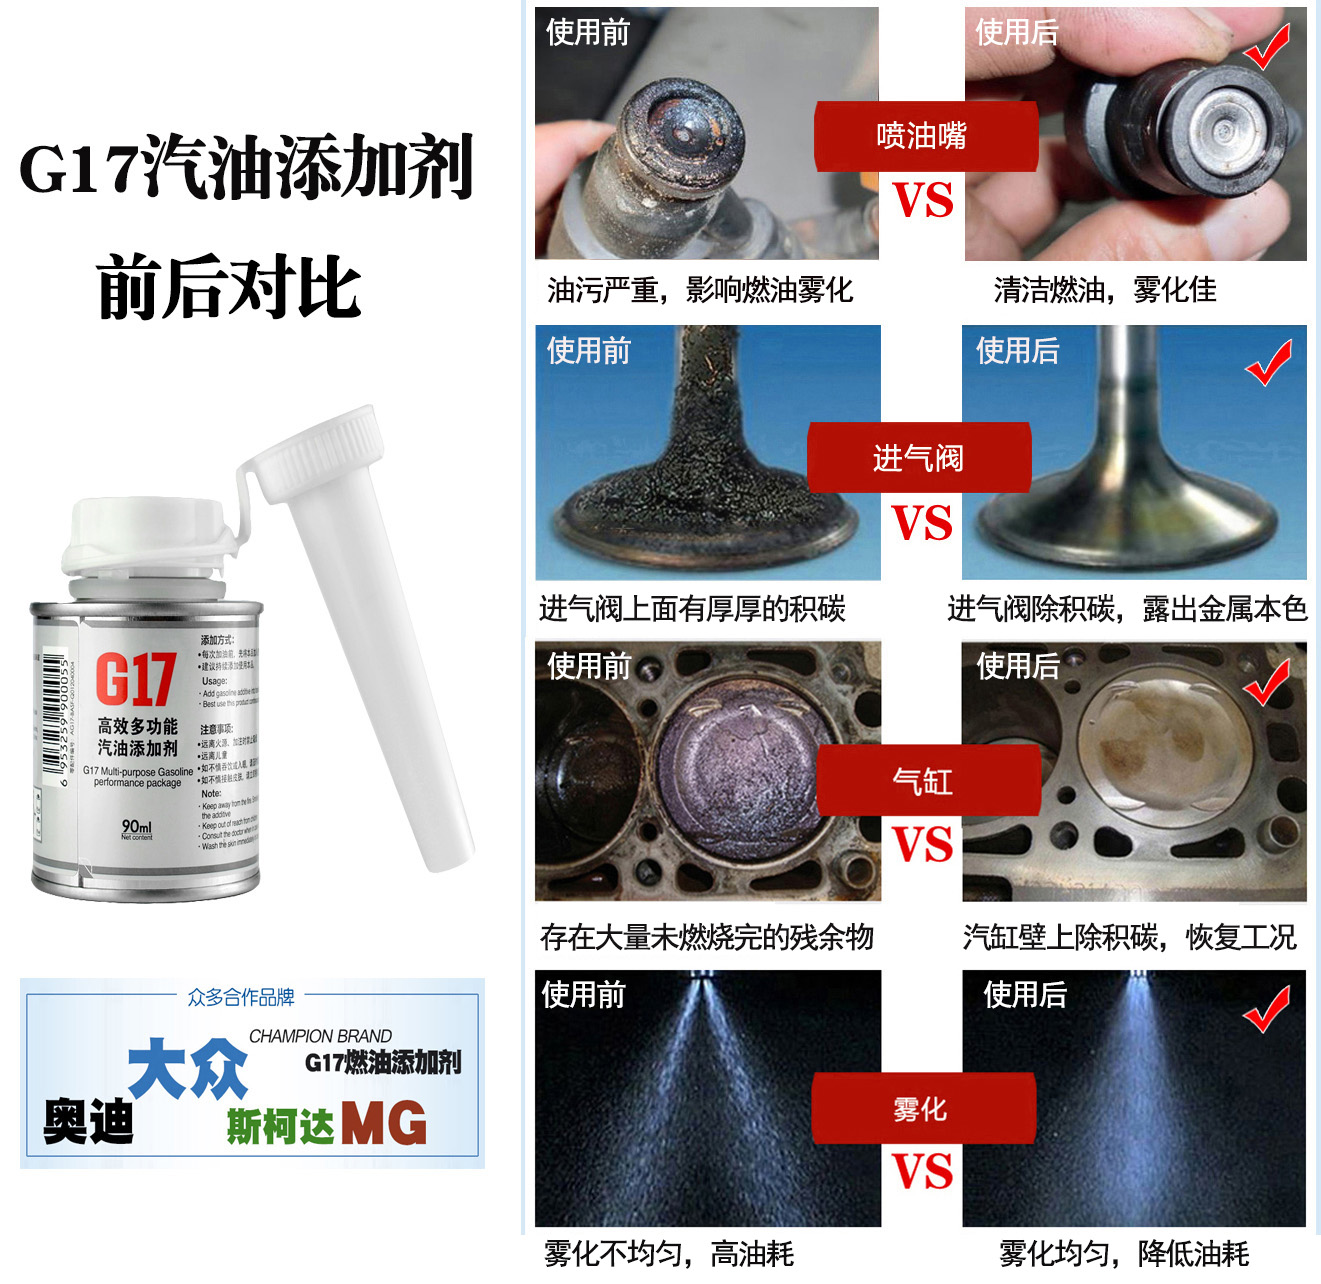 Basf Liquid G17 Fuel Po Gasoline Additive For Audi Volatile Carbon Mercedes Benz Additives Exhaust Cleaner